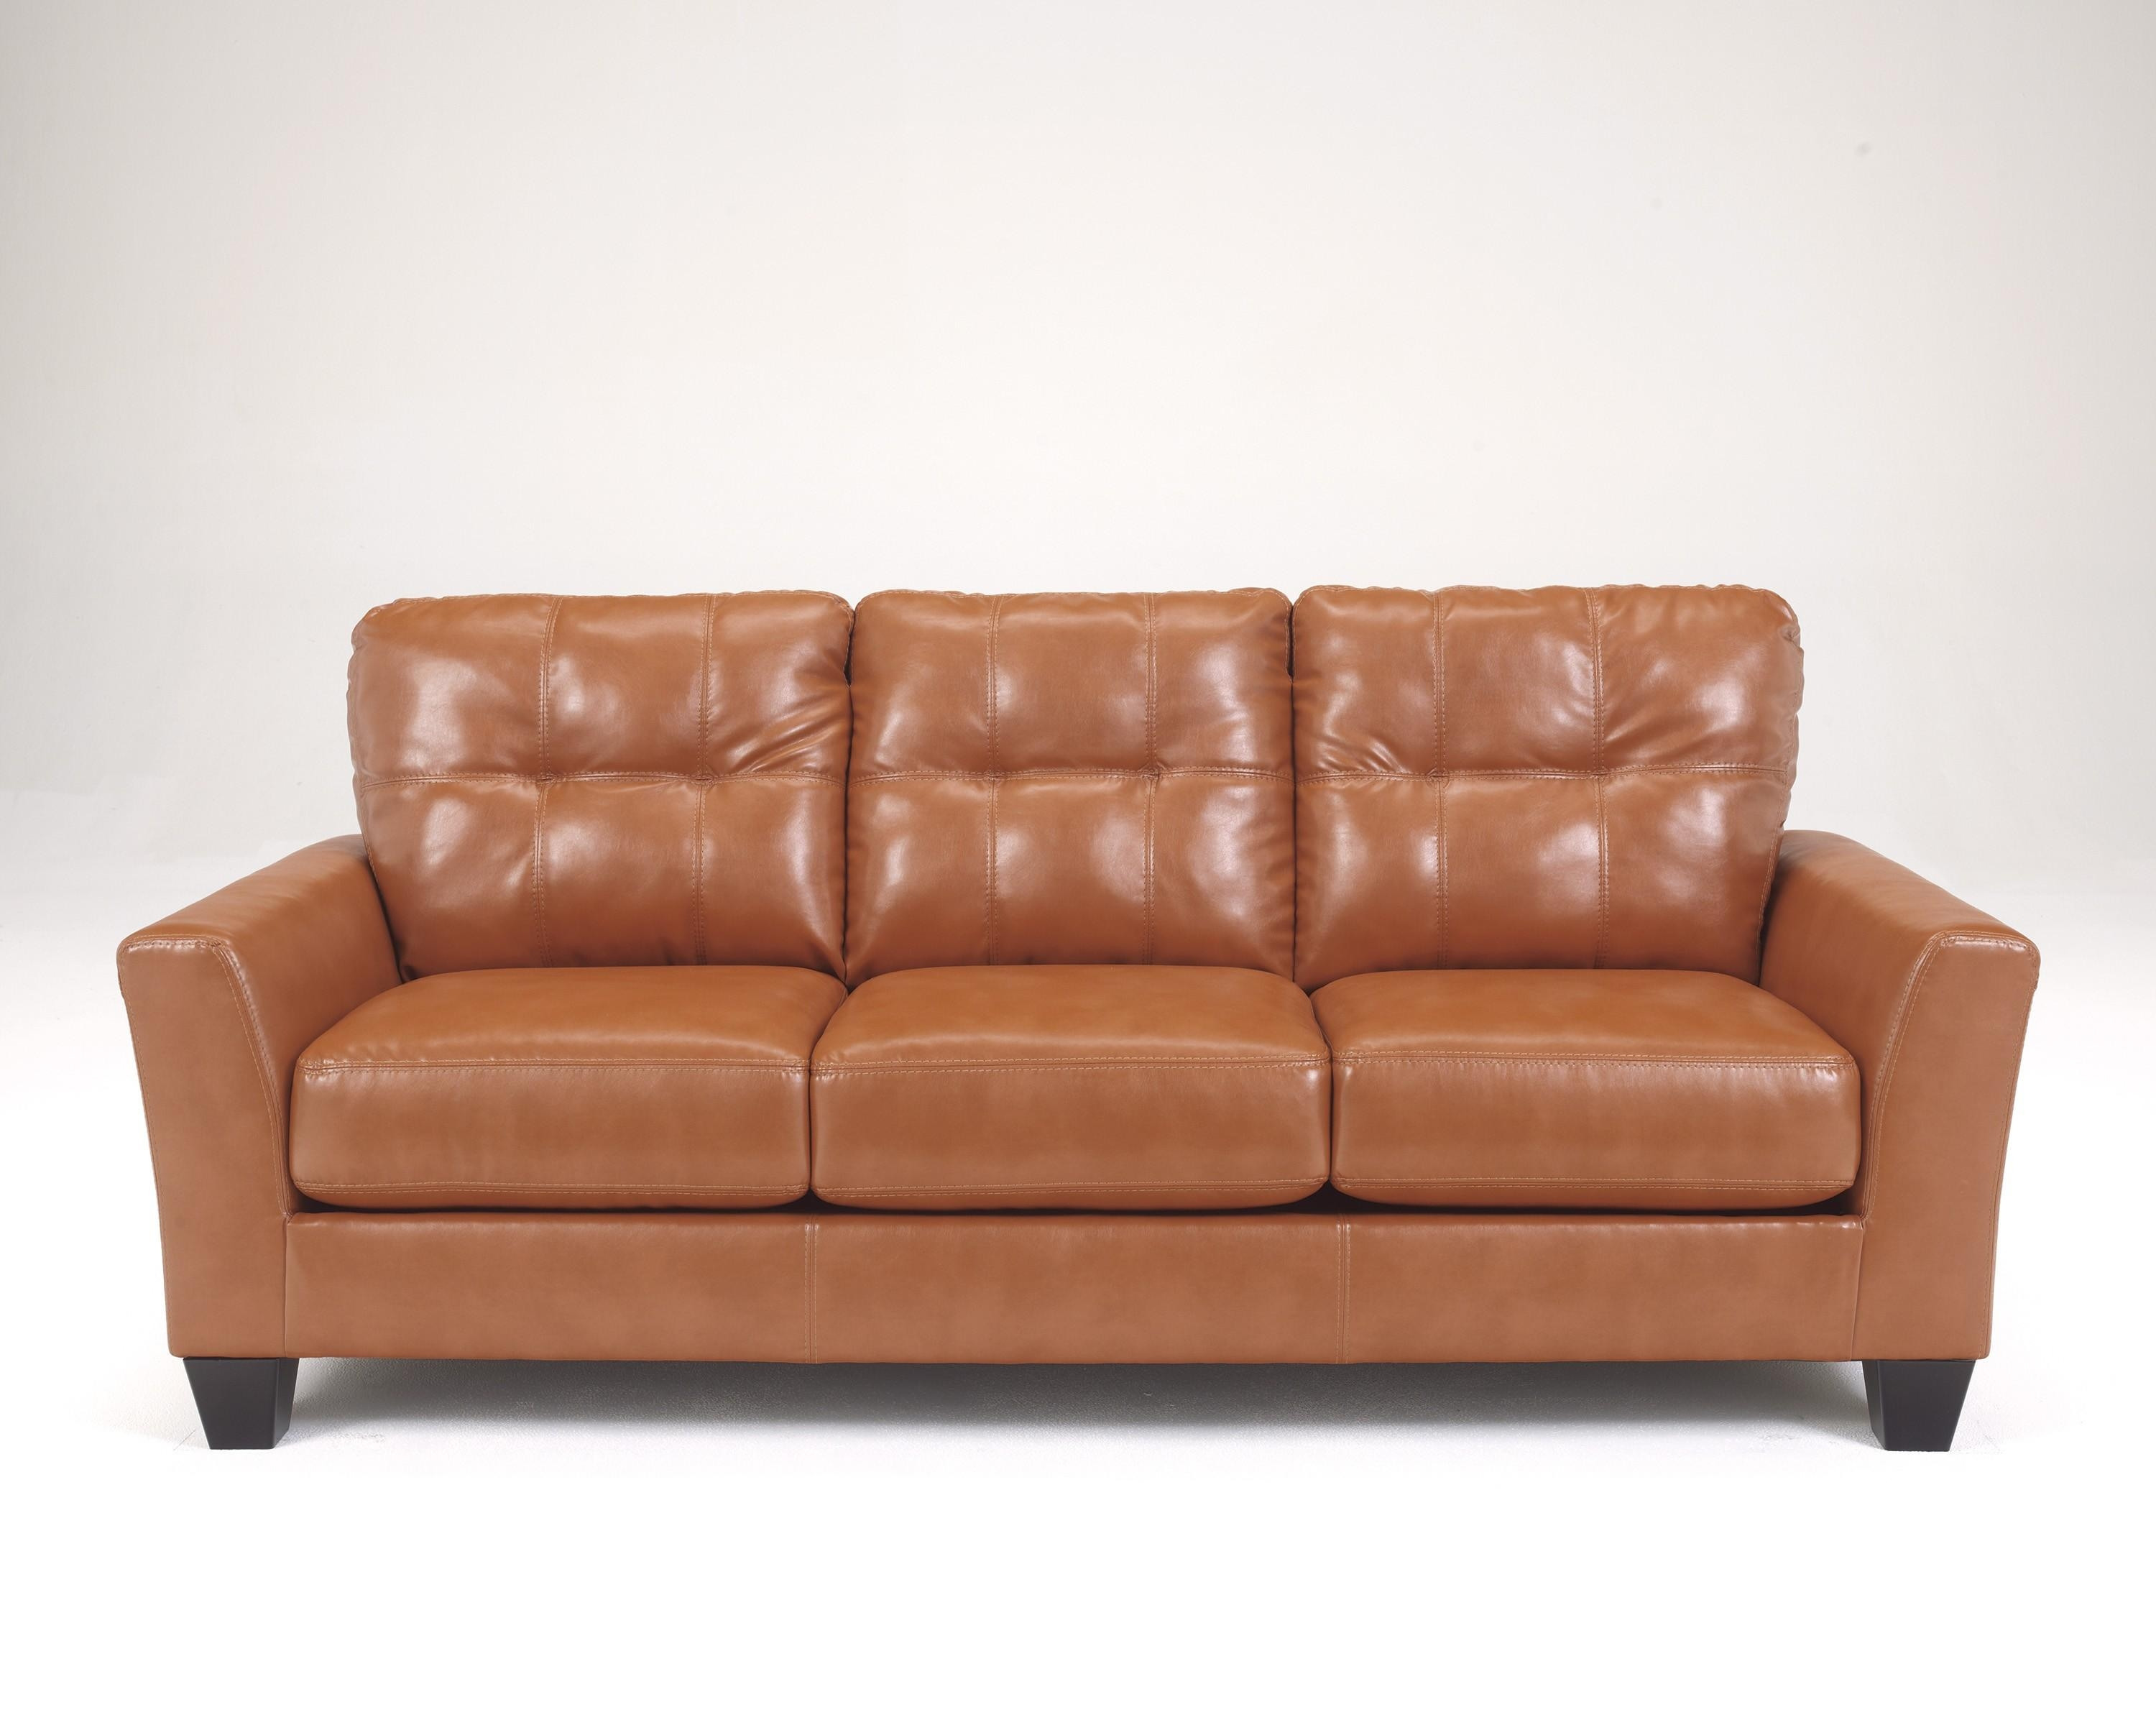 Benchcraft Leather Sofa With Ideas Photo 25331 | Kengire Pertaining To Benchcraft Leather Sofas (View 18 of 20)